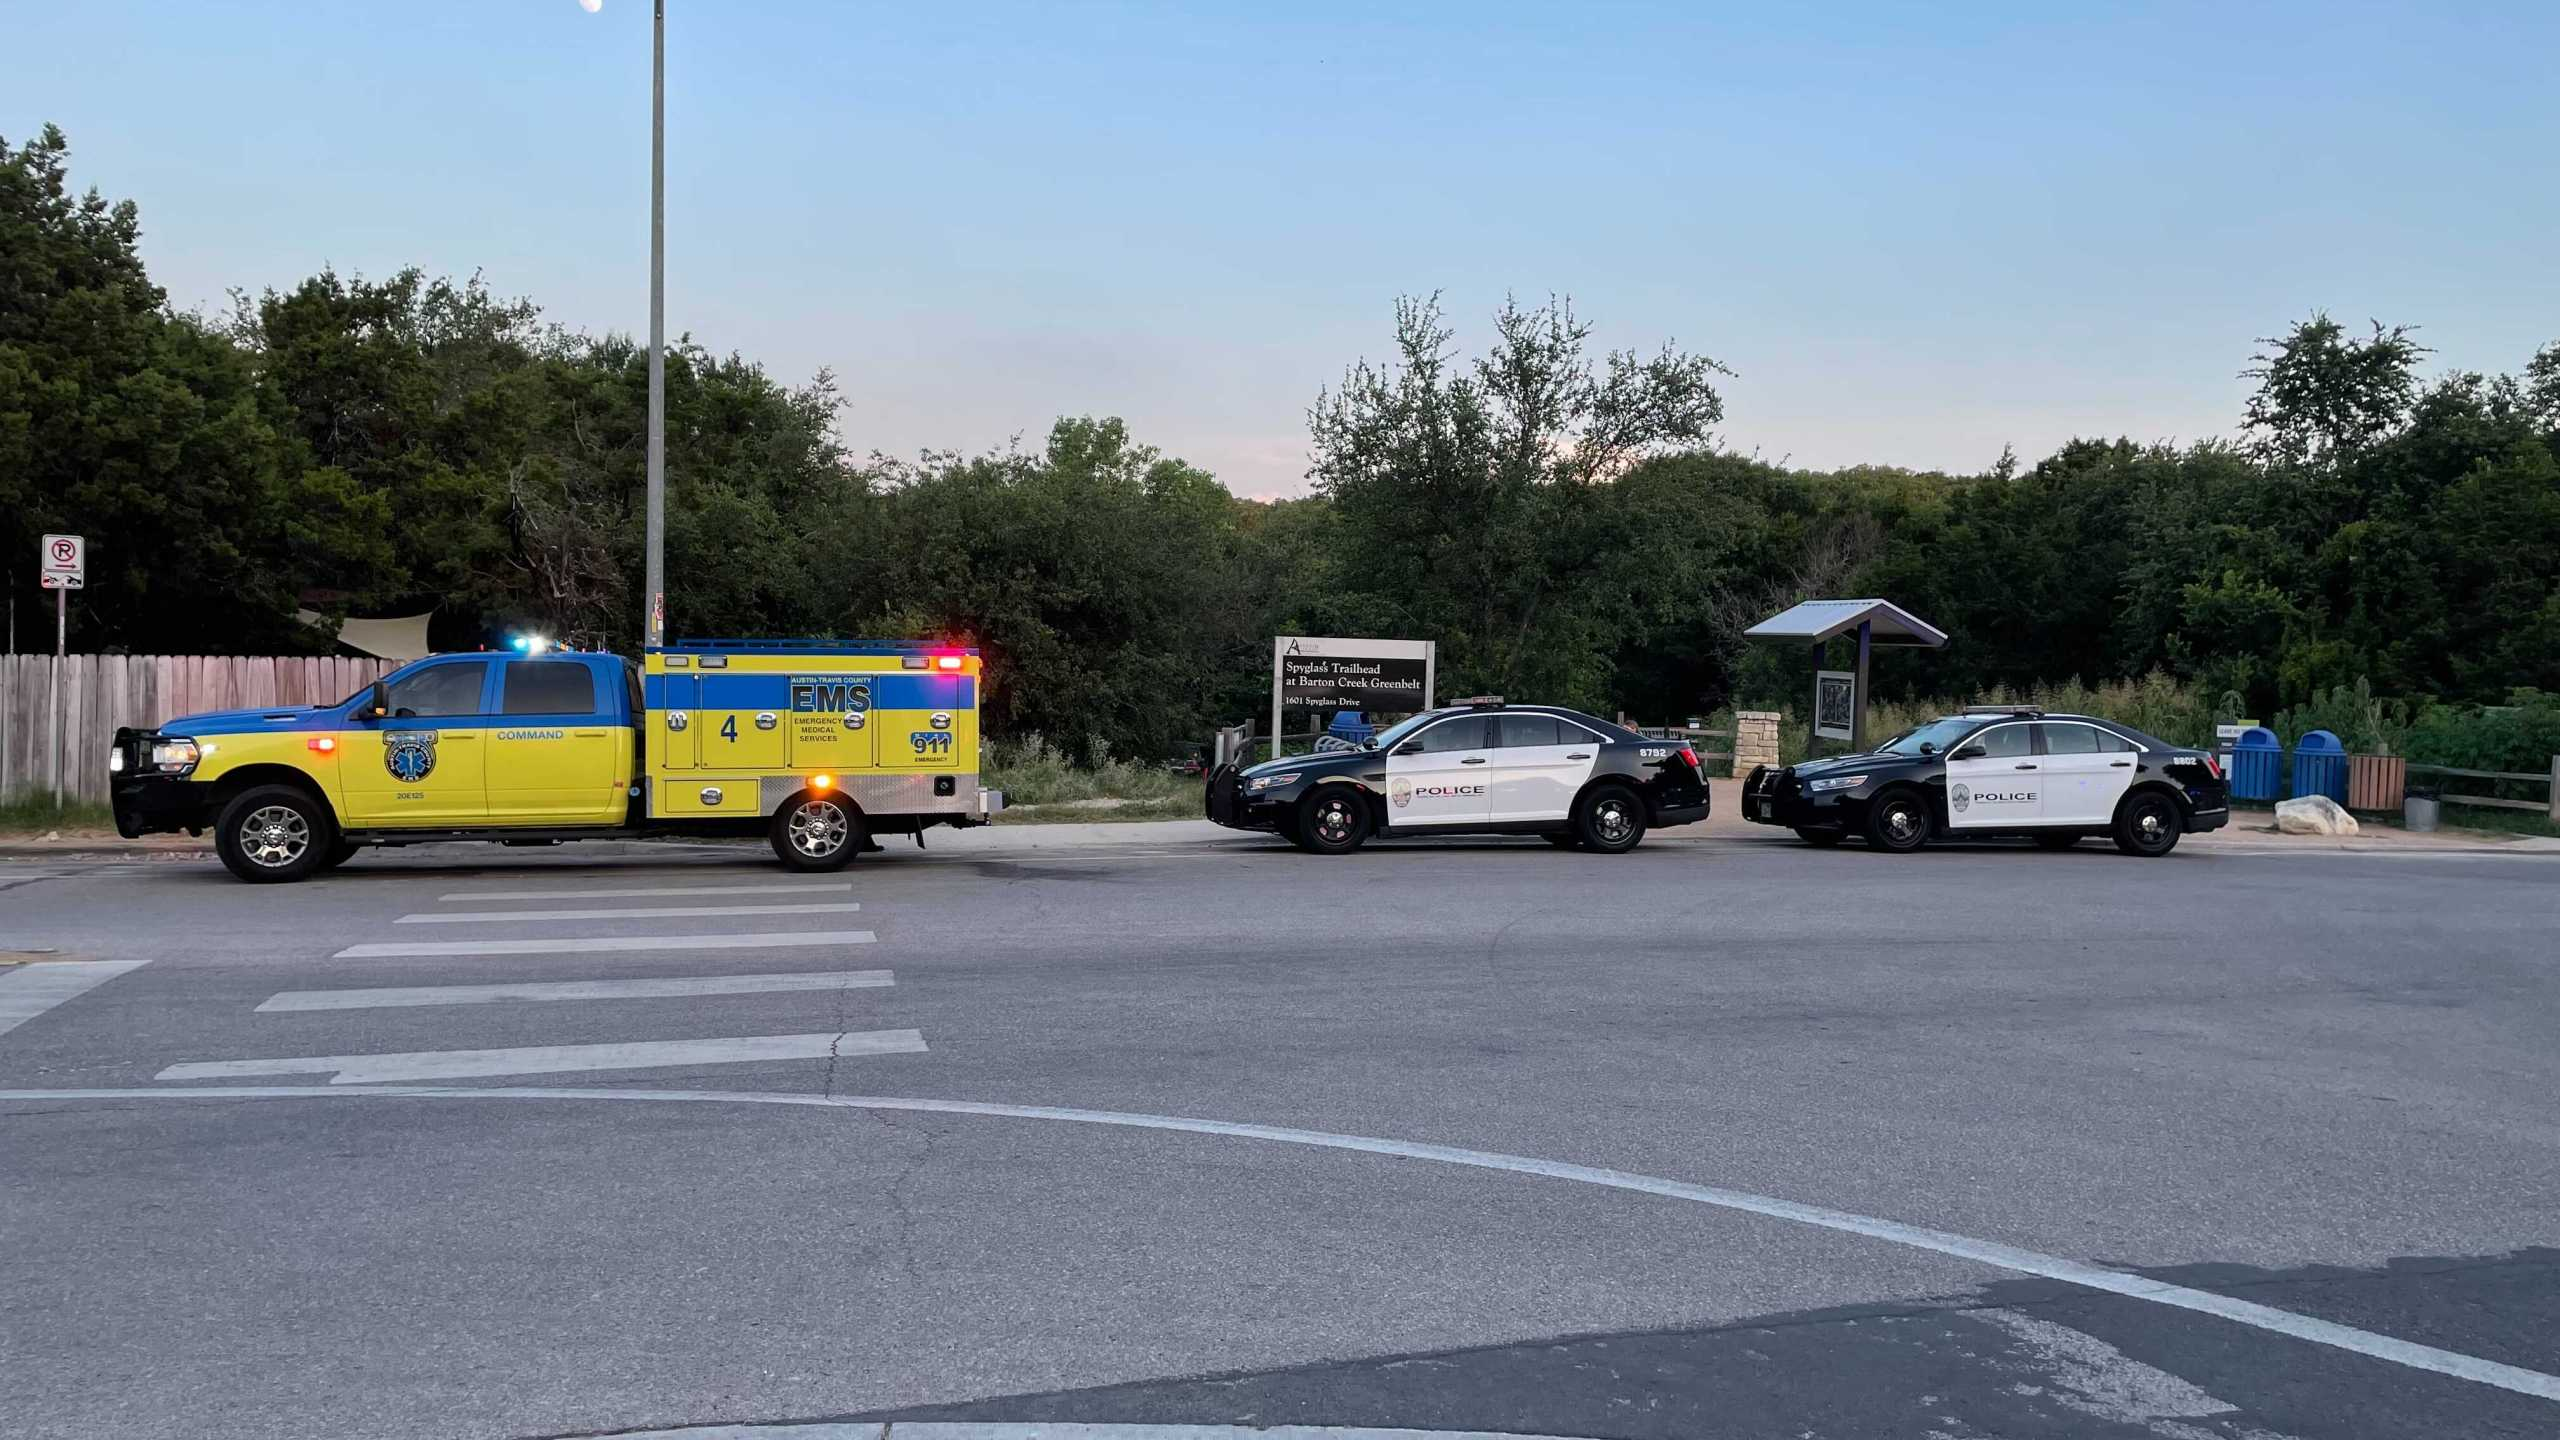 One person died at Barton Creek Greenbelt on June 22, 2021, after reports they fell about 30 feet (KXAN Photo/Tim Holcomb)